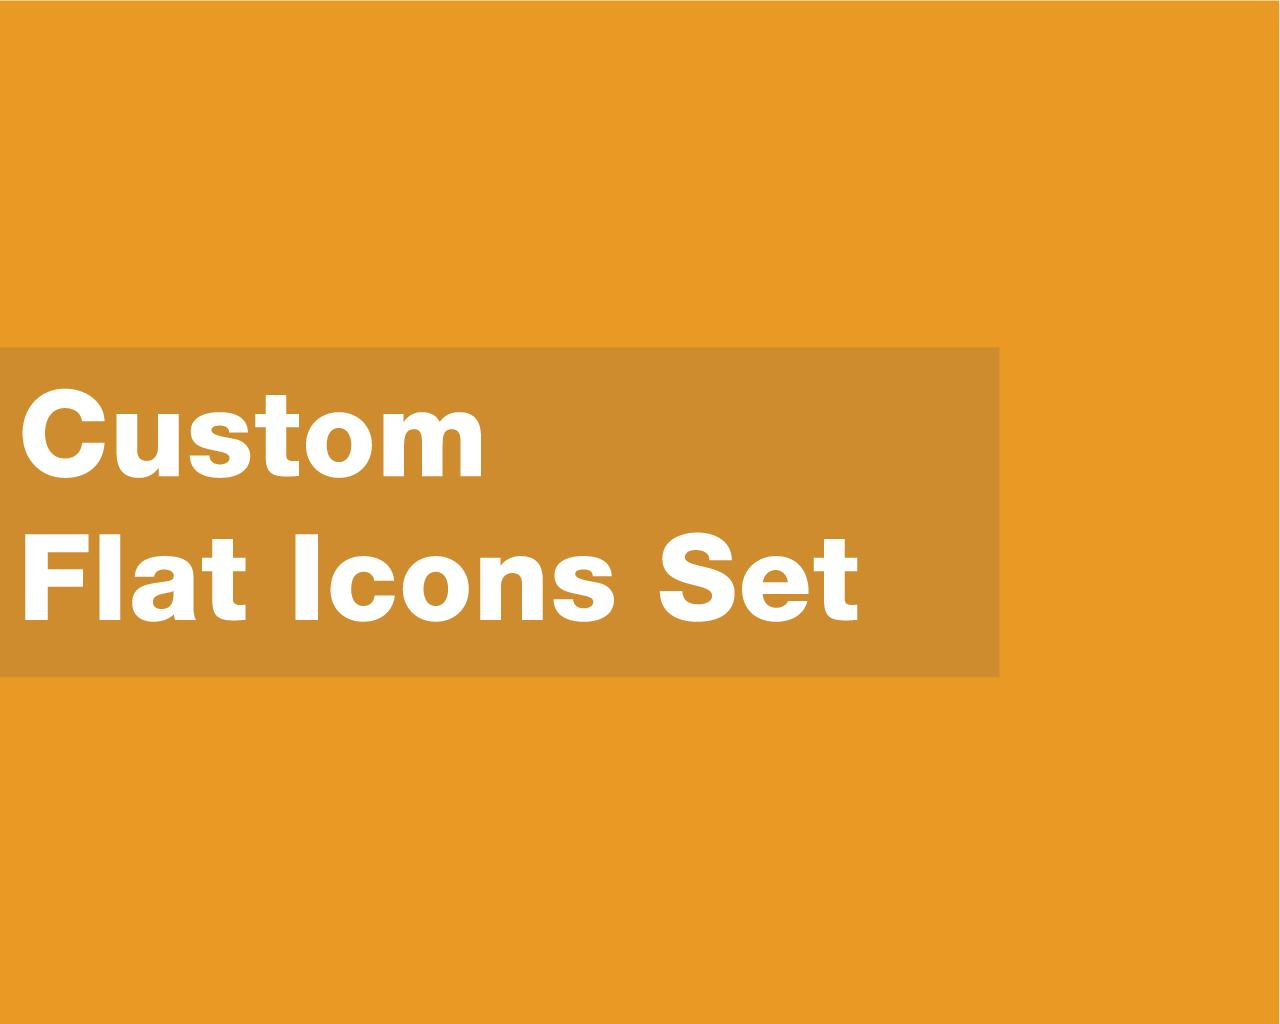 Custom Flat Icons Set by bolpent - 77562